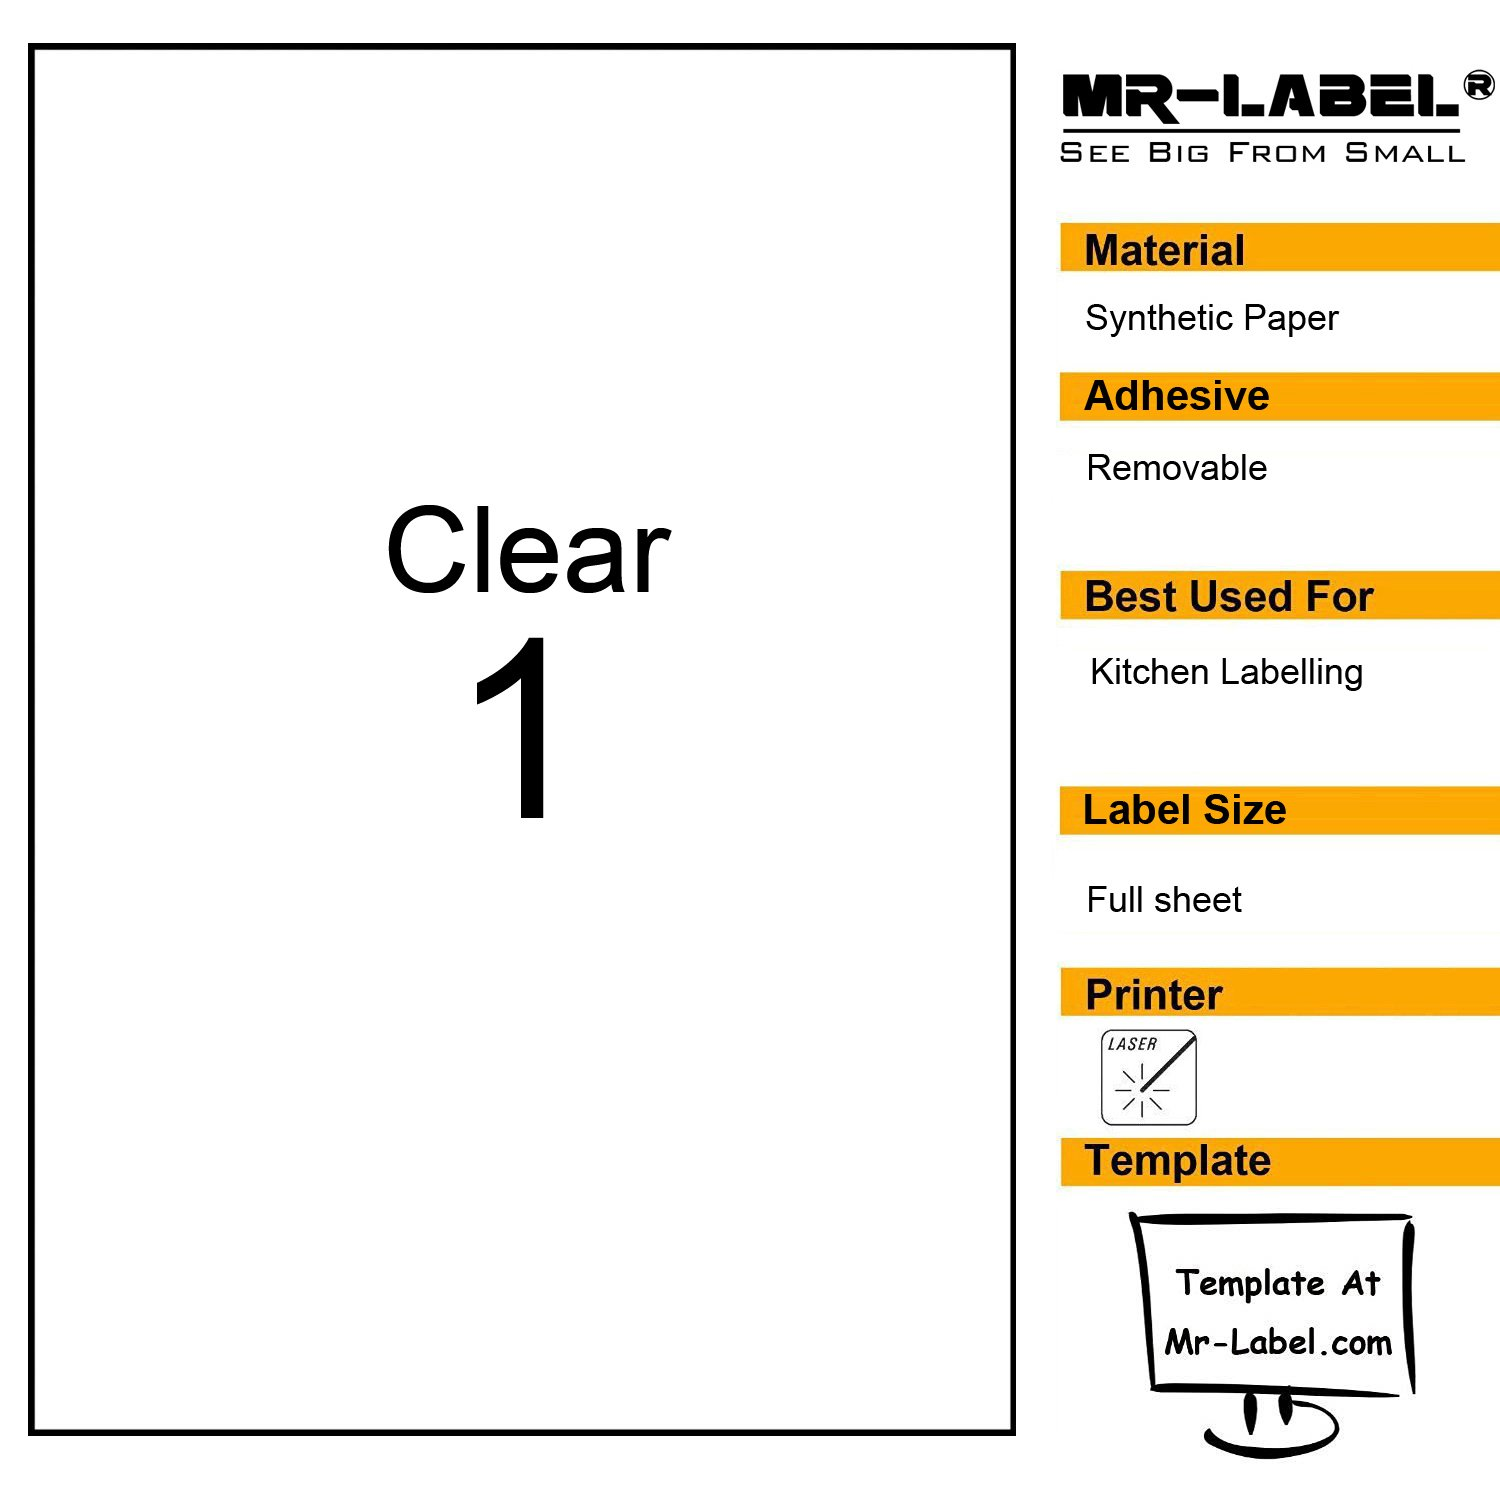 Mr-Label Clear Matte Full Letter Sheet Removable Adhesive Labels -Transparent Tear-Resistant Waterproof Stickers for Kitchen Use | Manufacturing and Storage-Laser Print Only (25 Sheets) by MR-LABEL